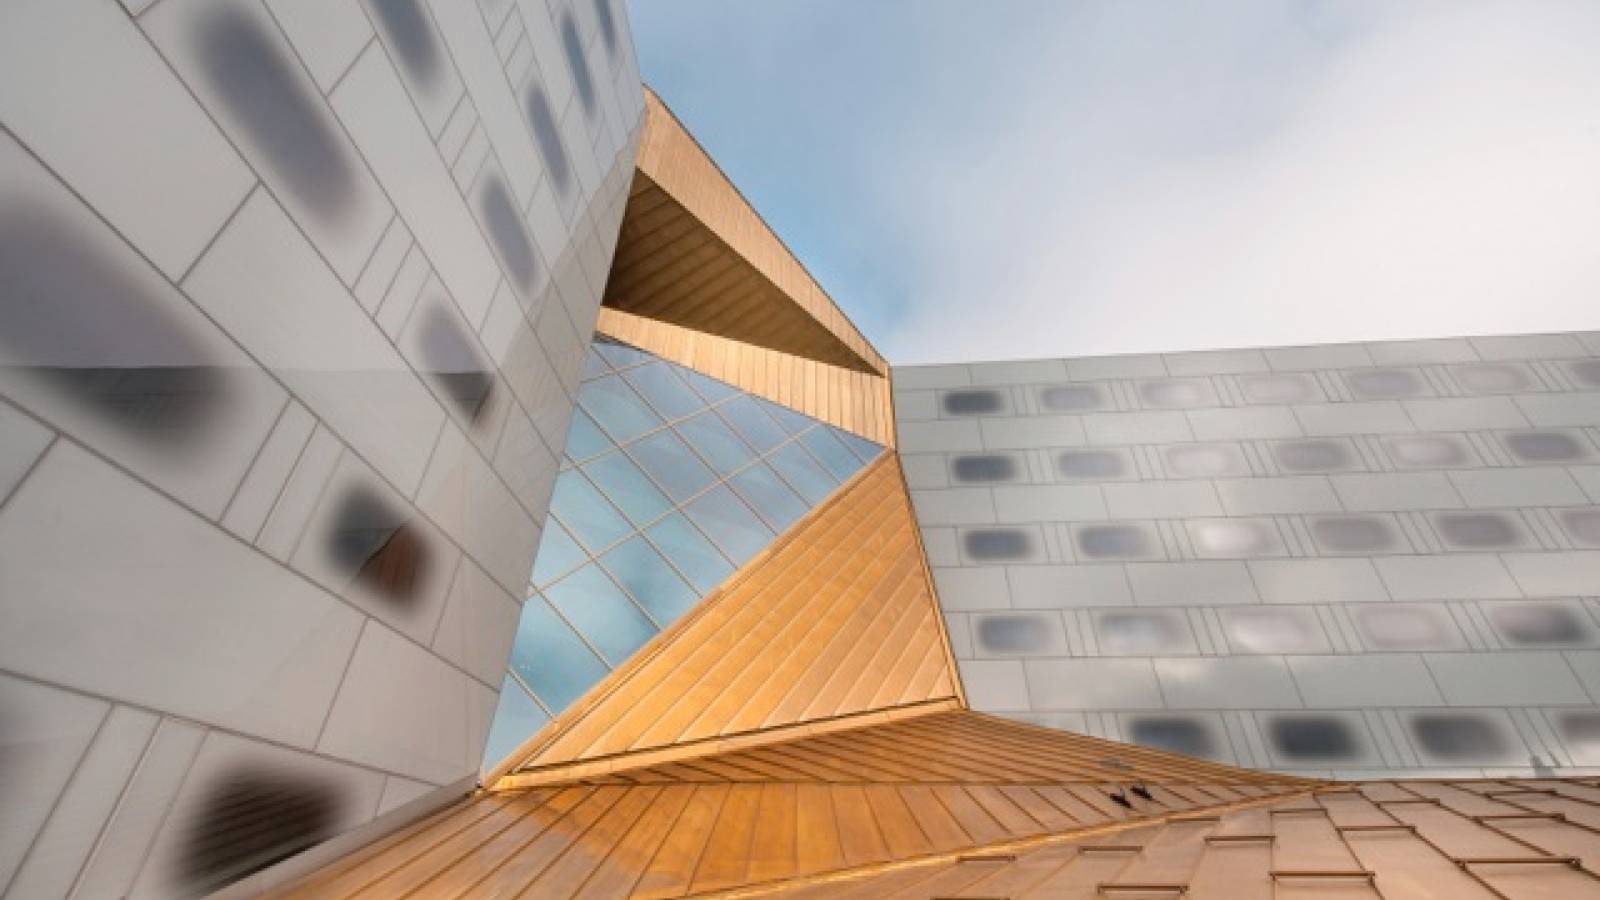 ROOF BETWEEN HOTEL BLOCKS - Clarion Hotel & Congress - SPOL Architects